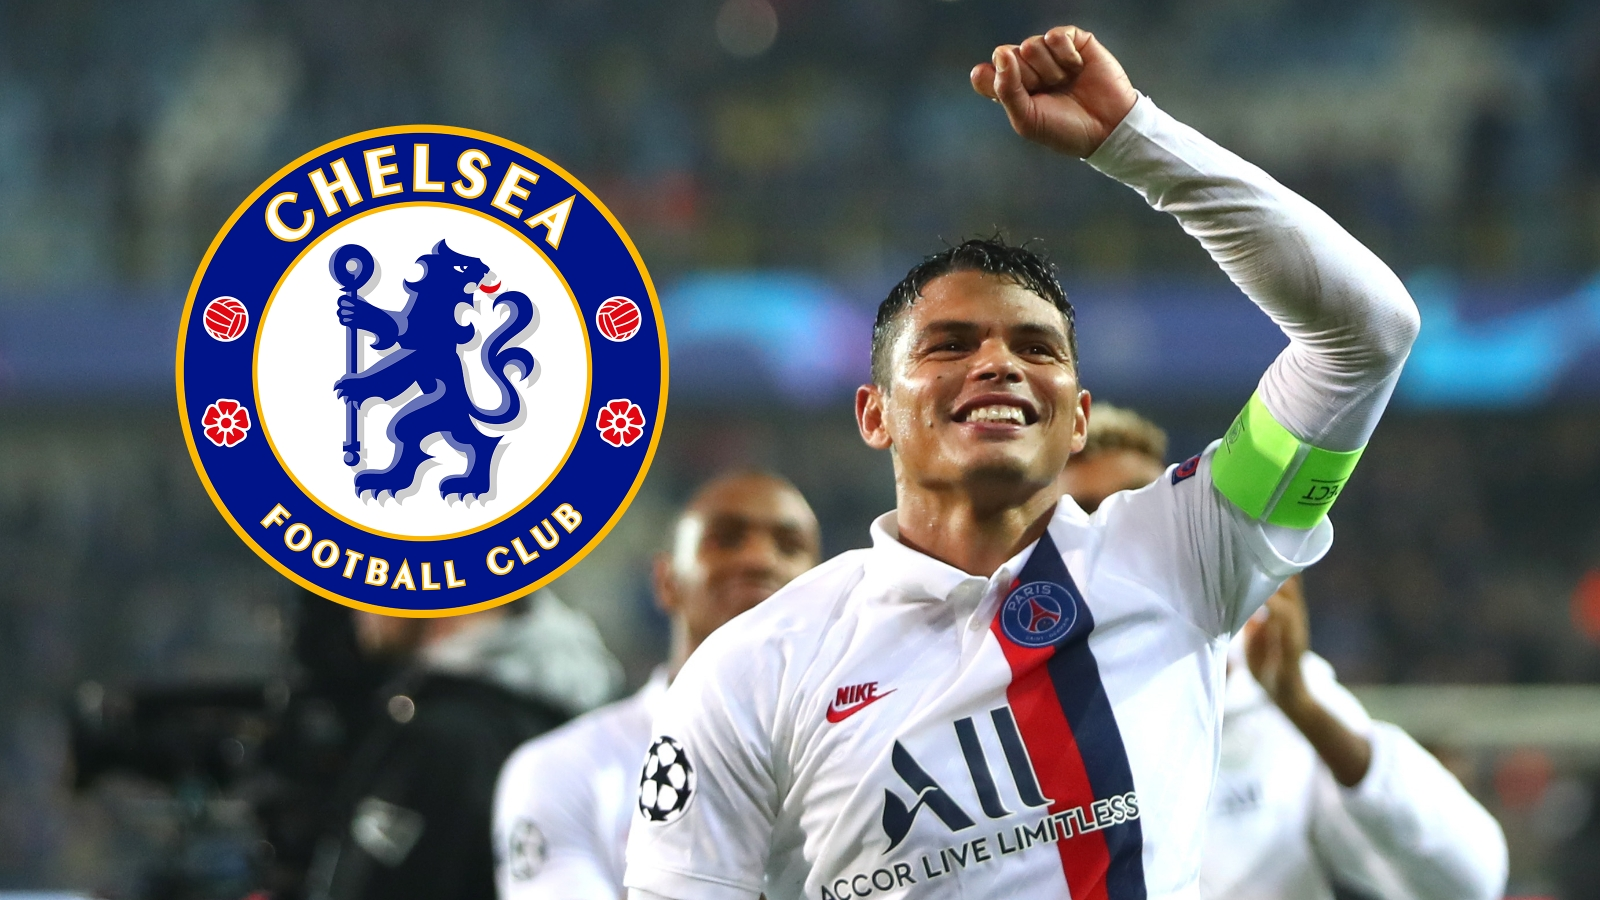 'Thiago Silva will bring experience & leadership to Chelsea' - Giroud backs ex-PSG star to 'adapt very quickly' to the Premier League